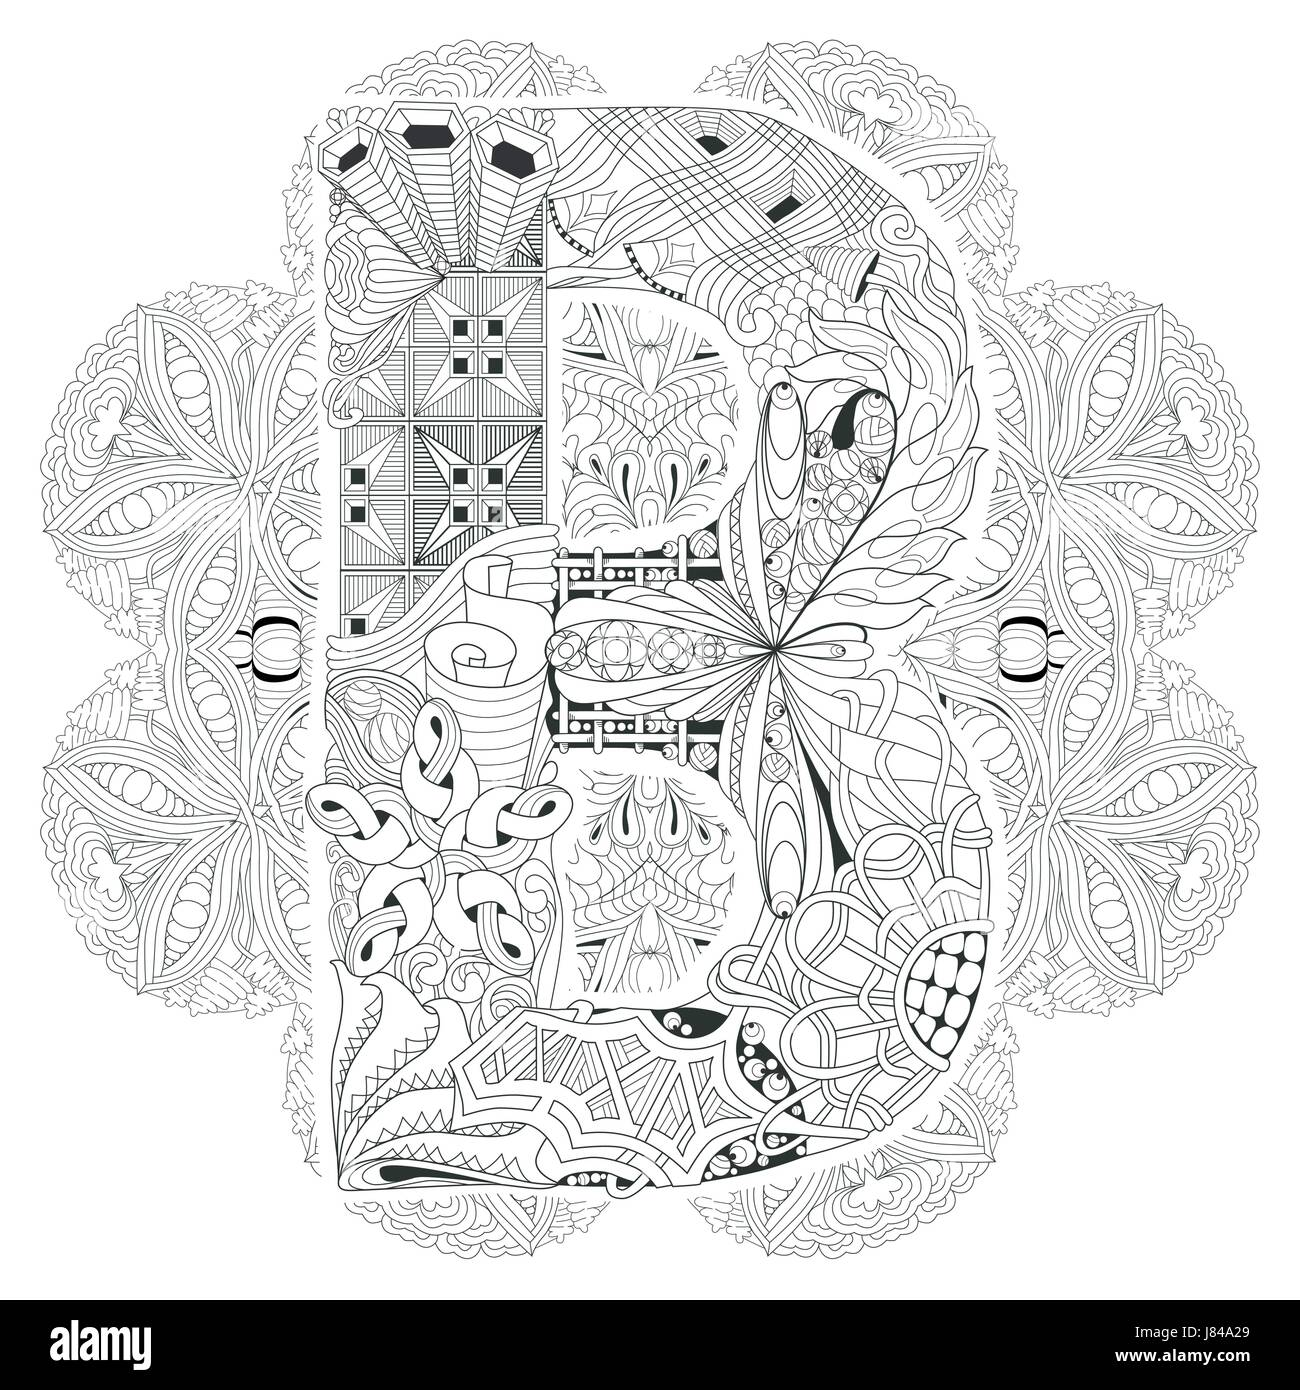 Adult Anti Stress Coloring Page Black And White Hand Drawn Illustration Mandala With Letter B For Book